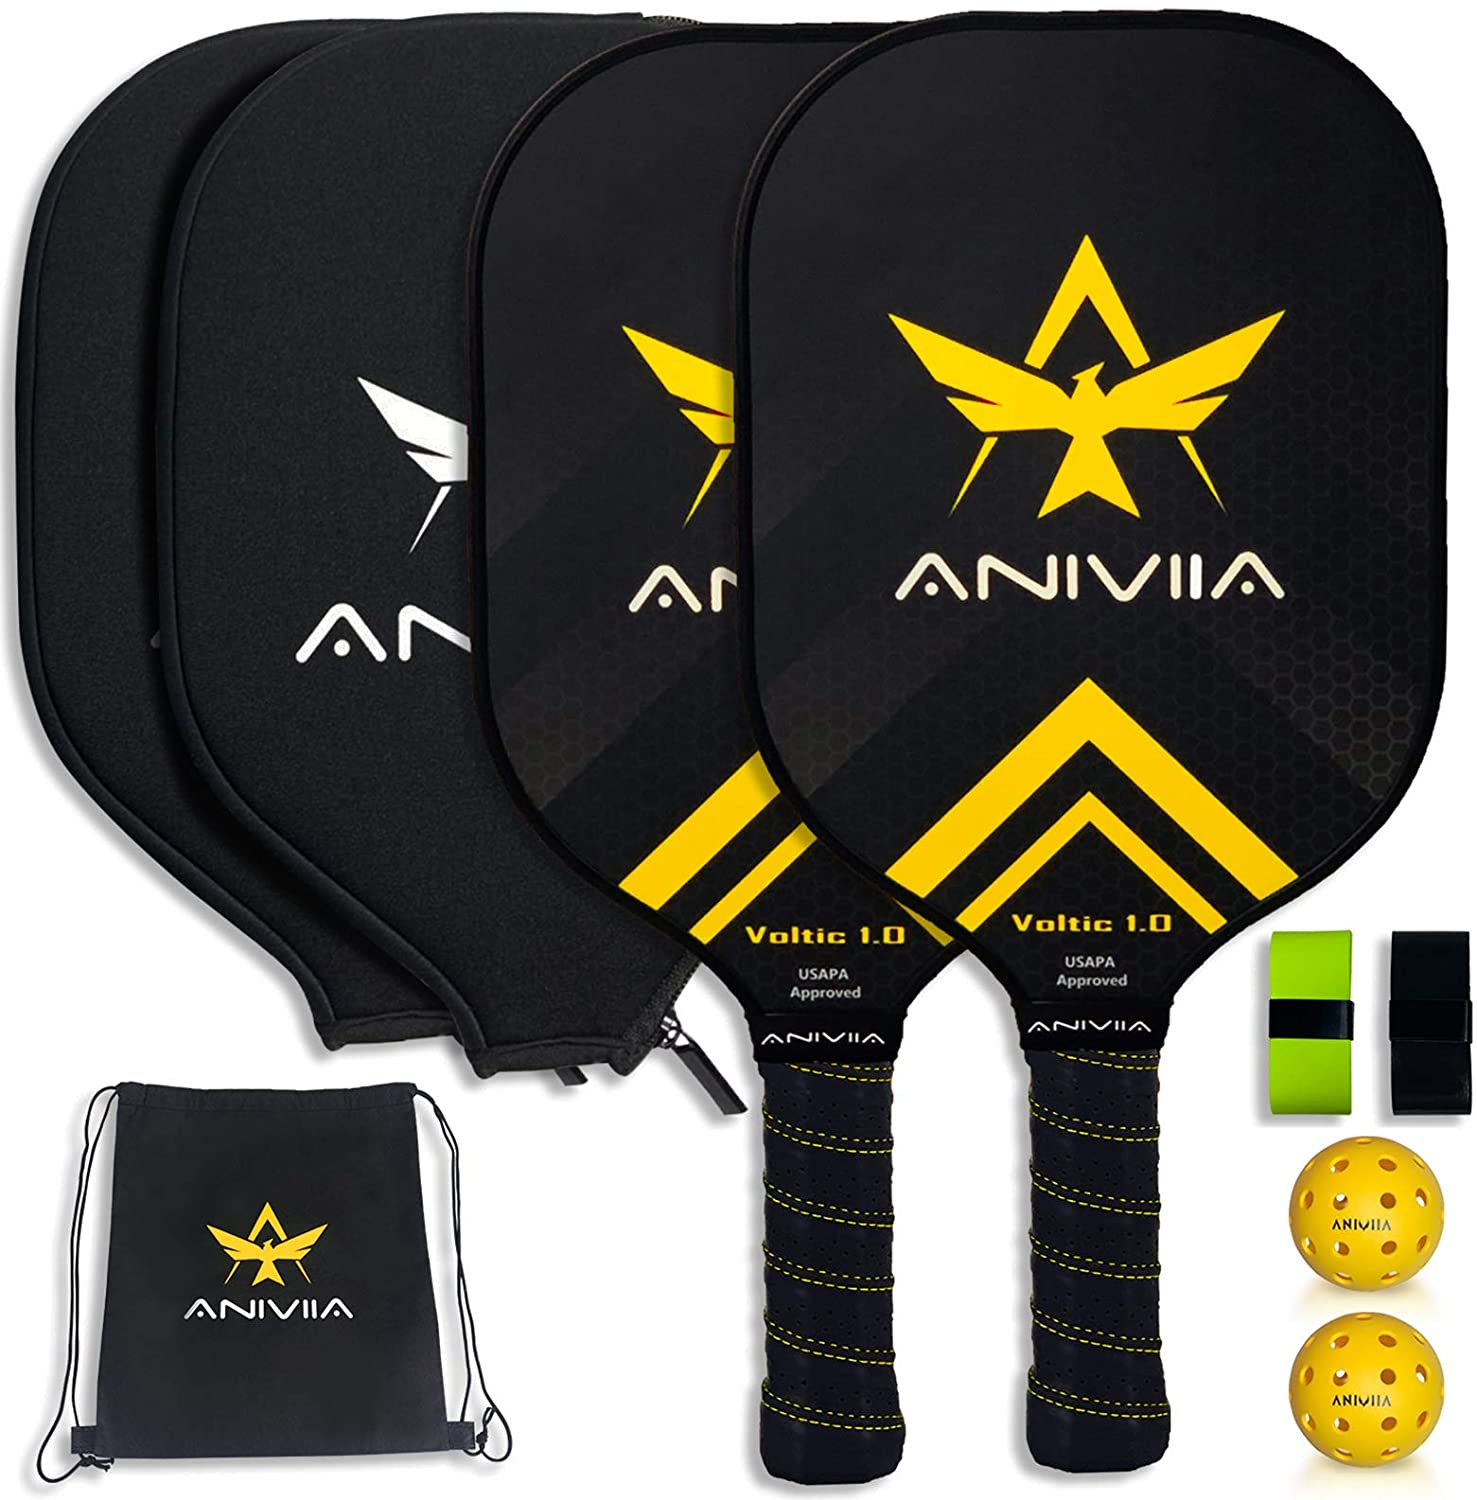 Aniviia Pickleball Paddle Racket Set of 2 - USAPA Approved   Japan Toray (T700s) Carbon Fiber, Polypropylene Honeycomb Core, Ultra Cushion   2 Outdoor Balls, 2 Neoprene Covers, 2 Overgrips and 1 Bag